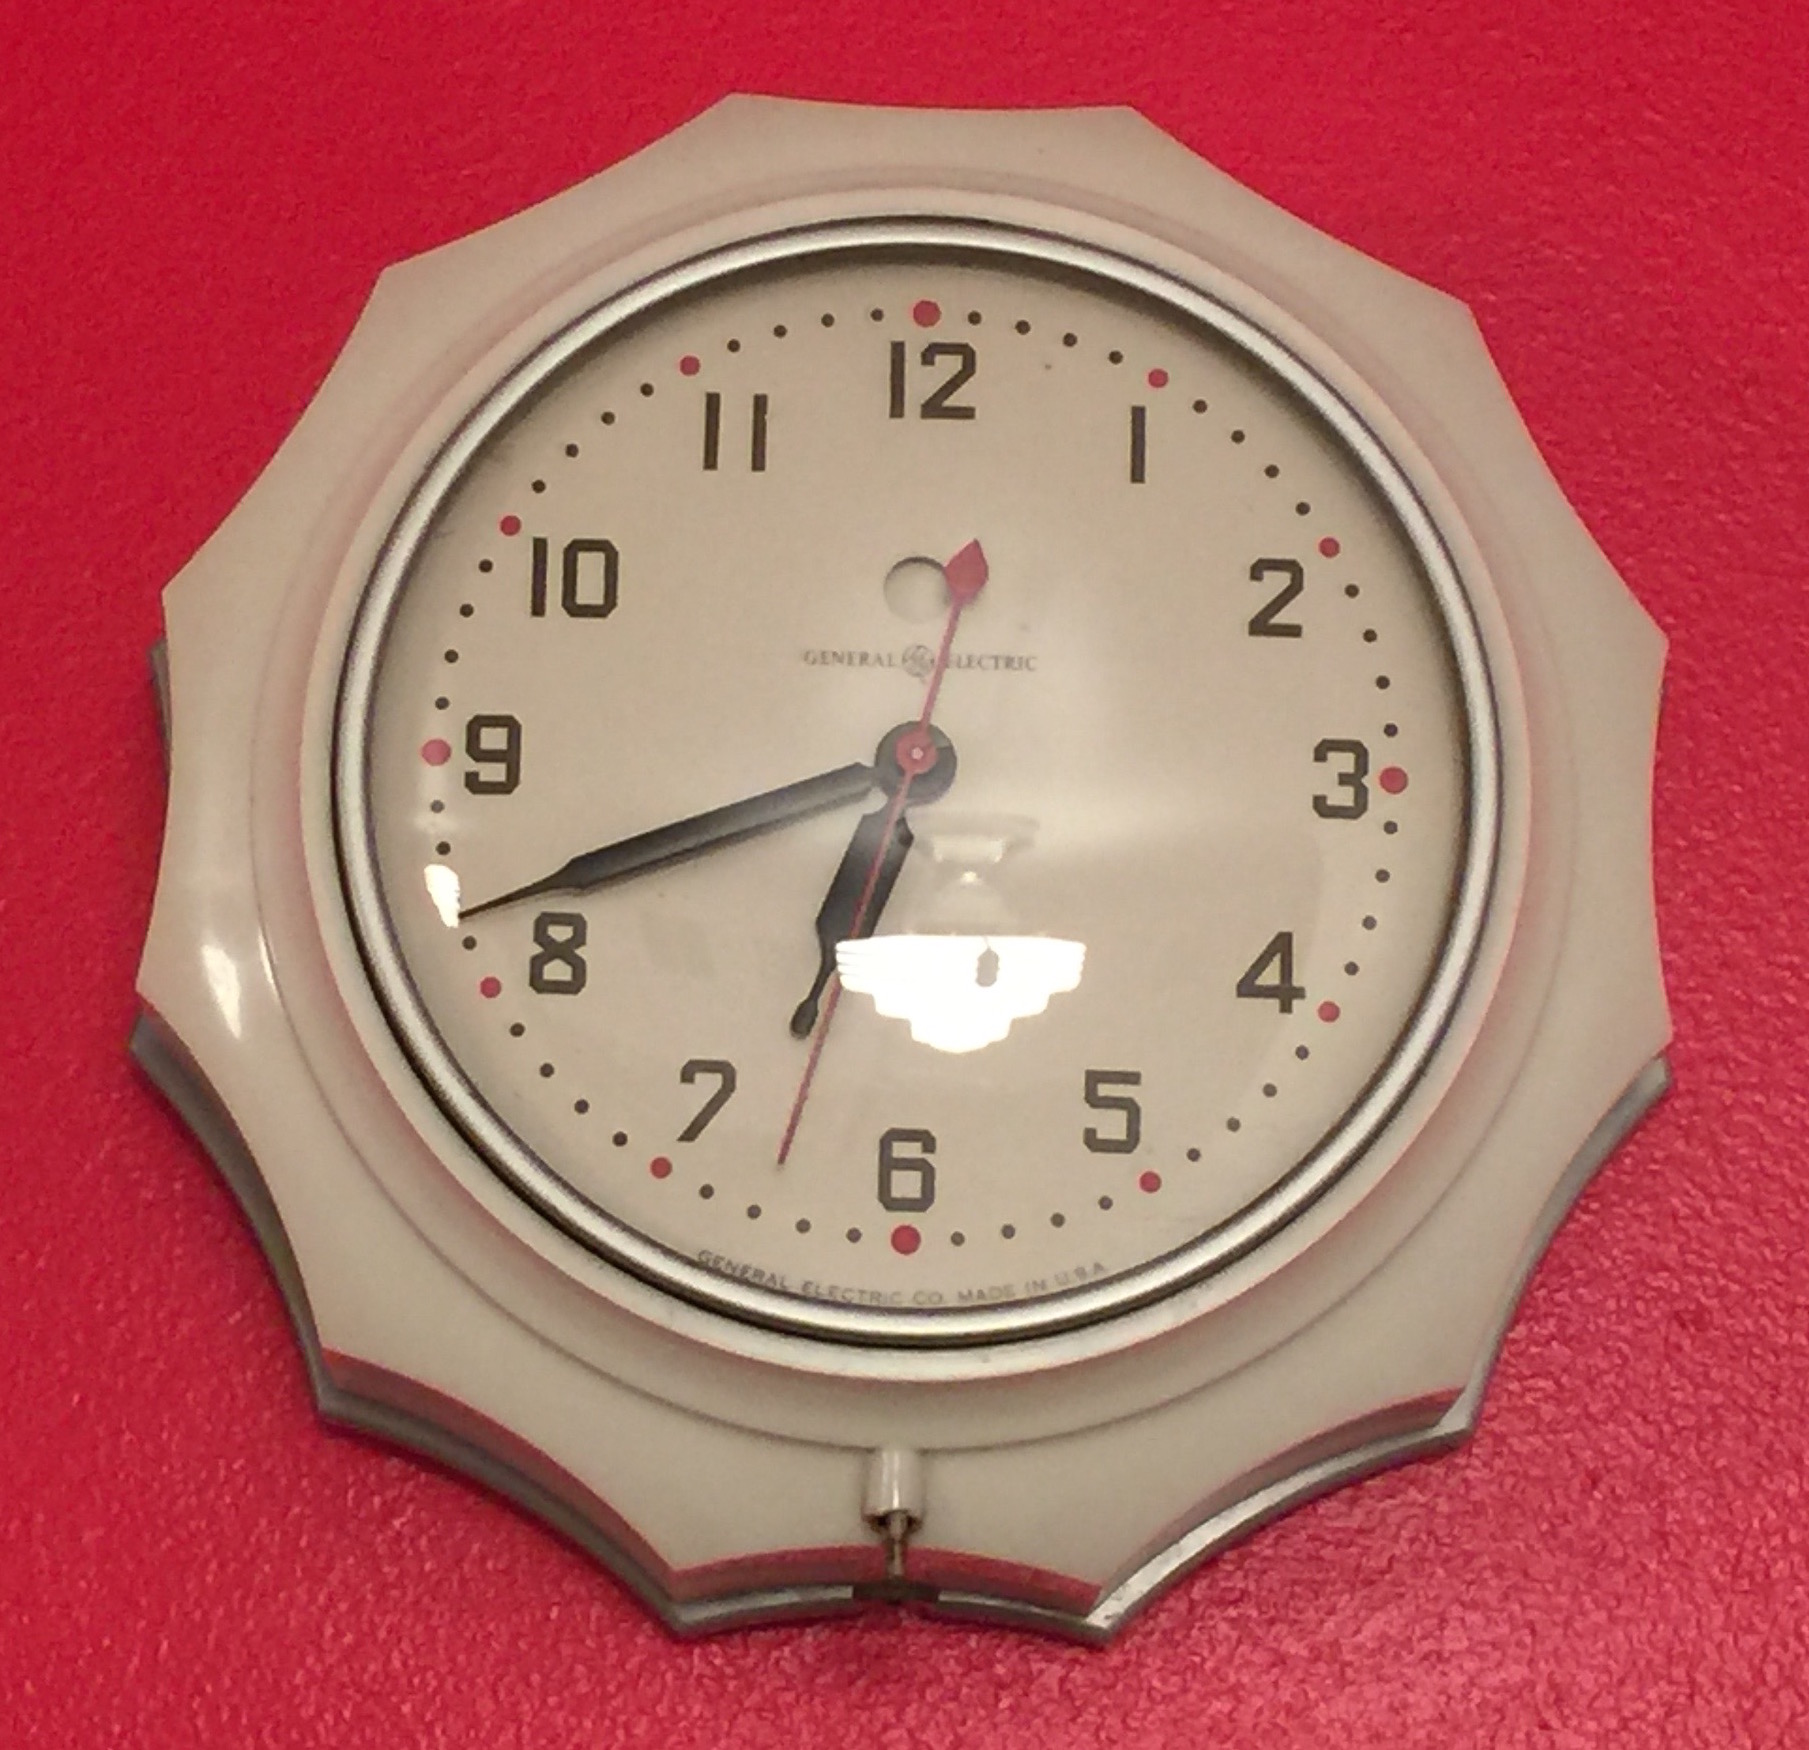 Time to collect art deco clocks driving for deco the general electric new hostess kitchen clock 1934 1941 1947 1952 amipublicfo Gallery